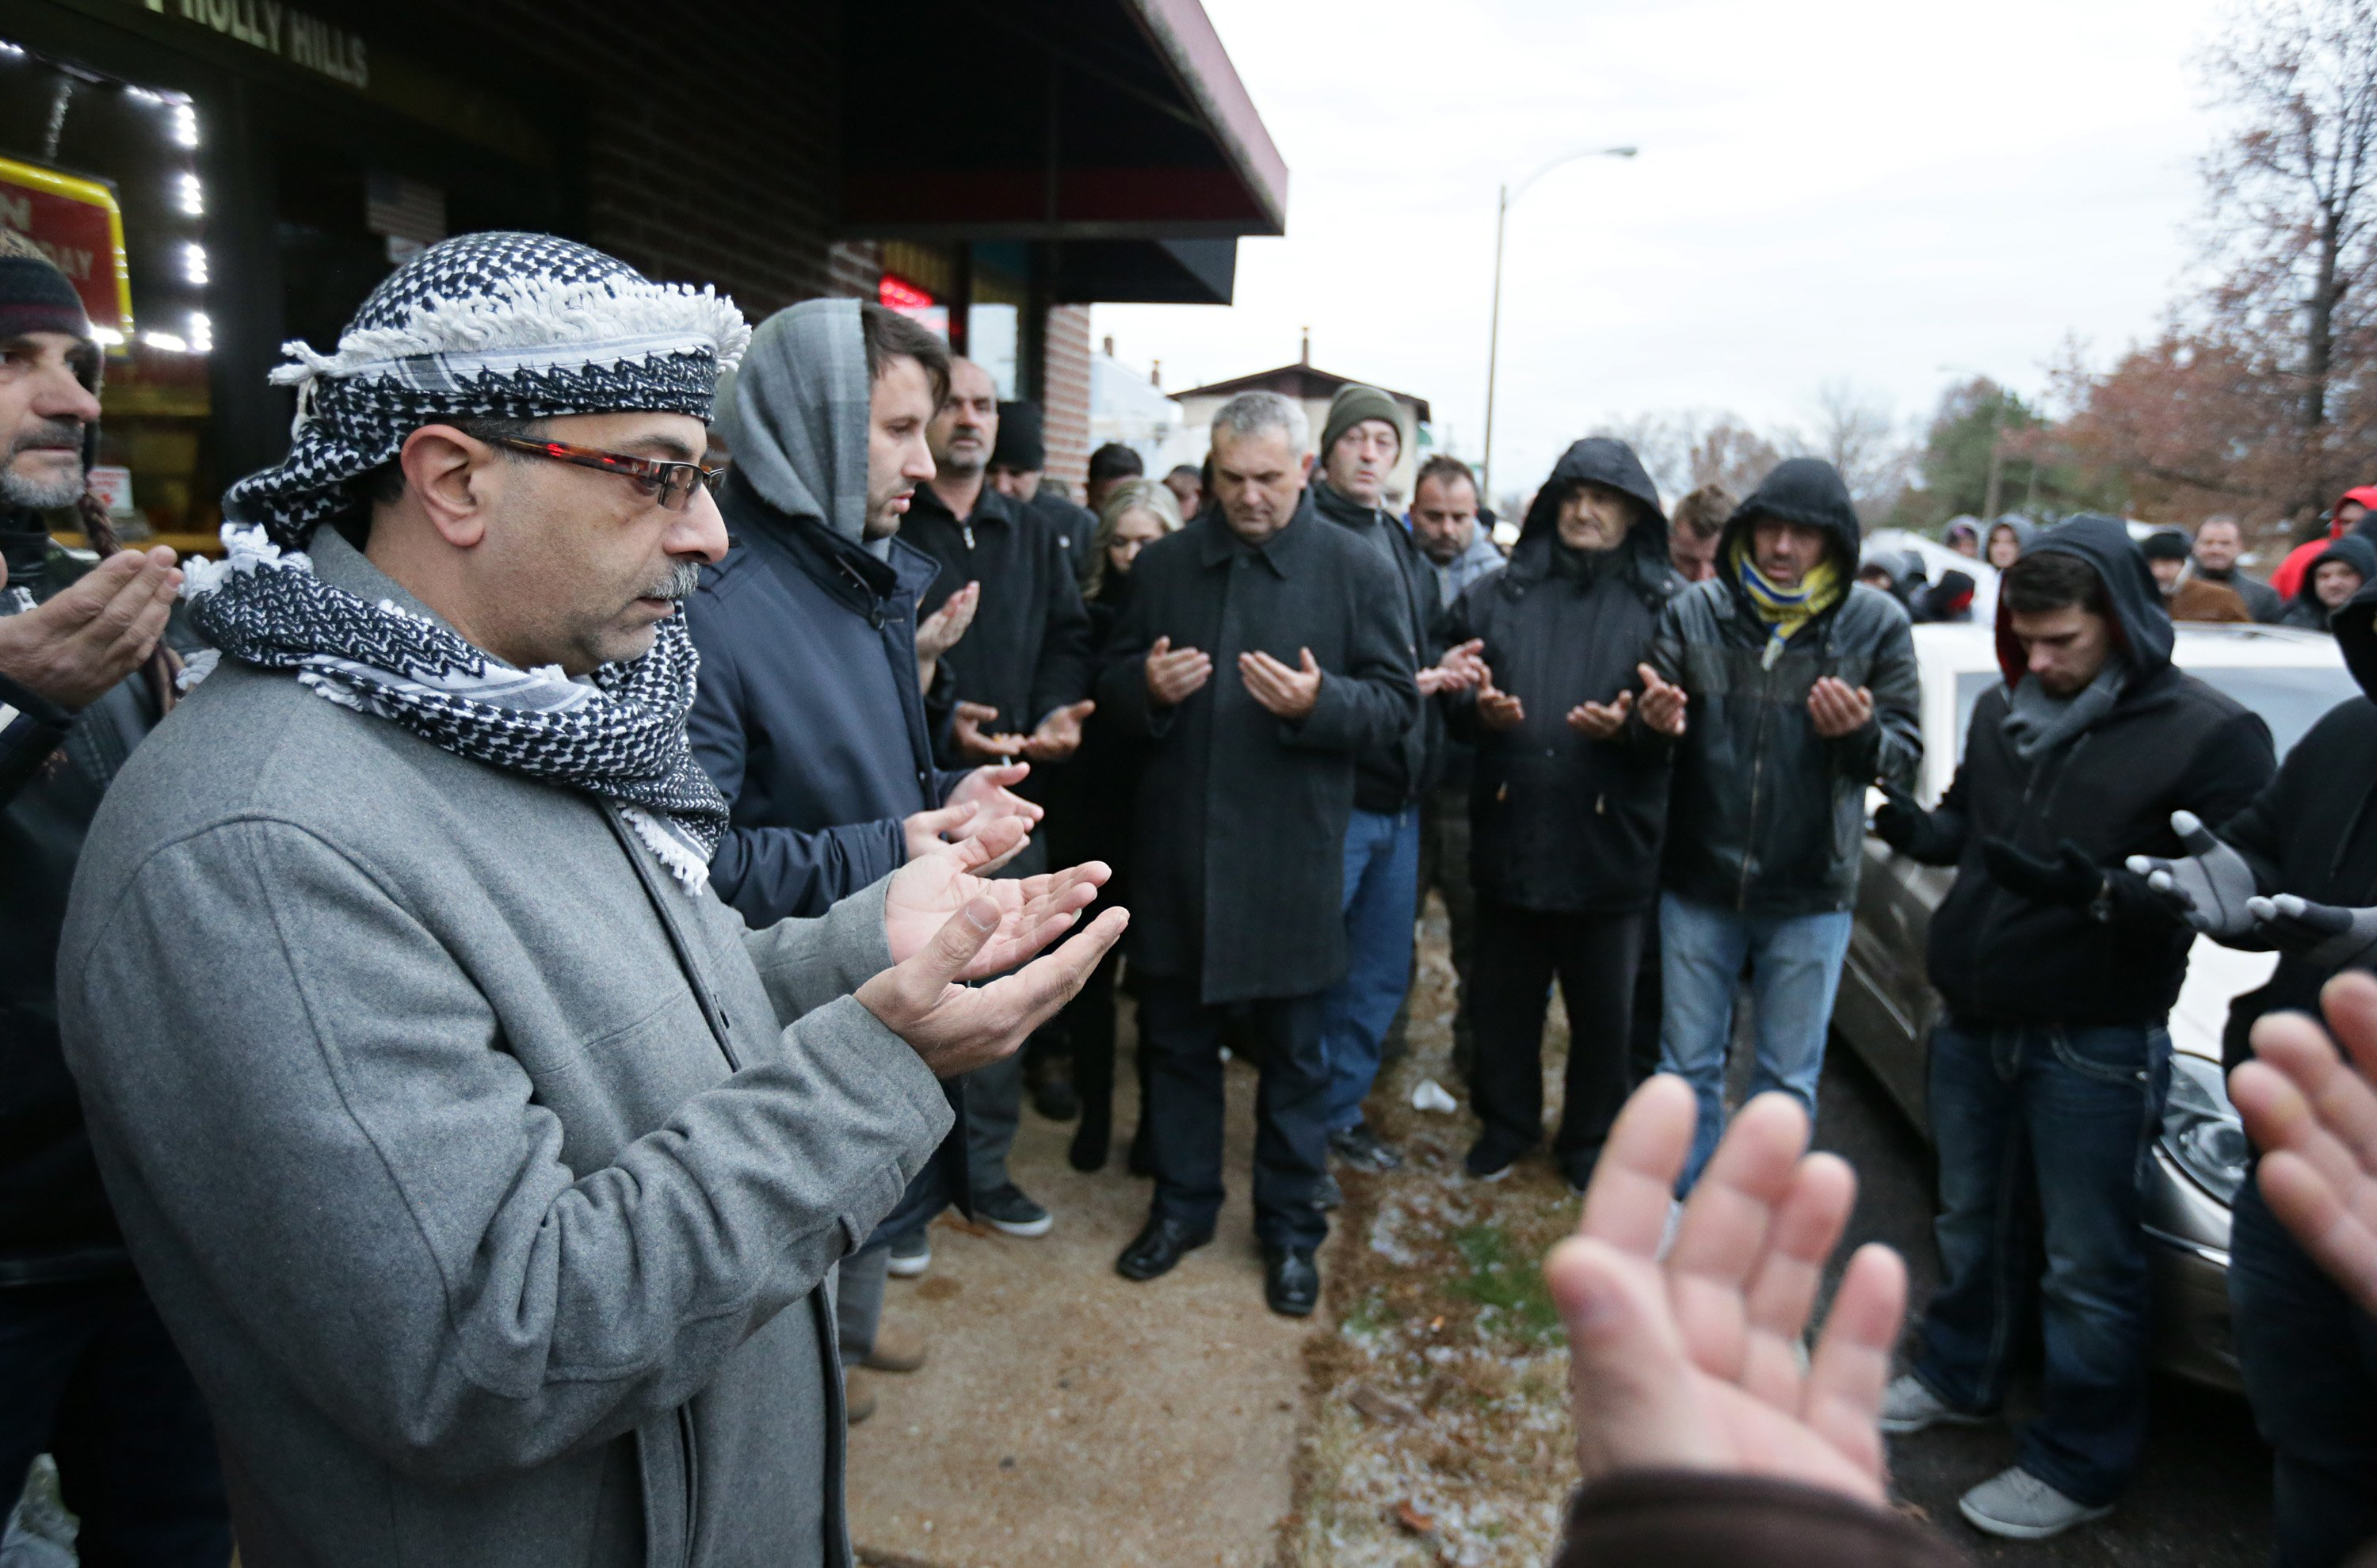 Zuhdi Masri, left, prays for murder victim Zemir Begic with a group of other Bosnians gathered on Holly Hills Avenue in St. Louis on Dec. 1, 2014.